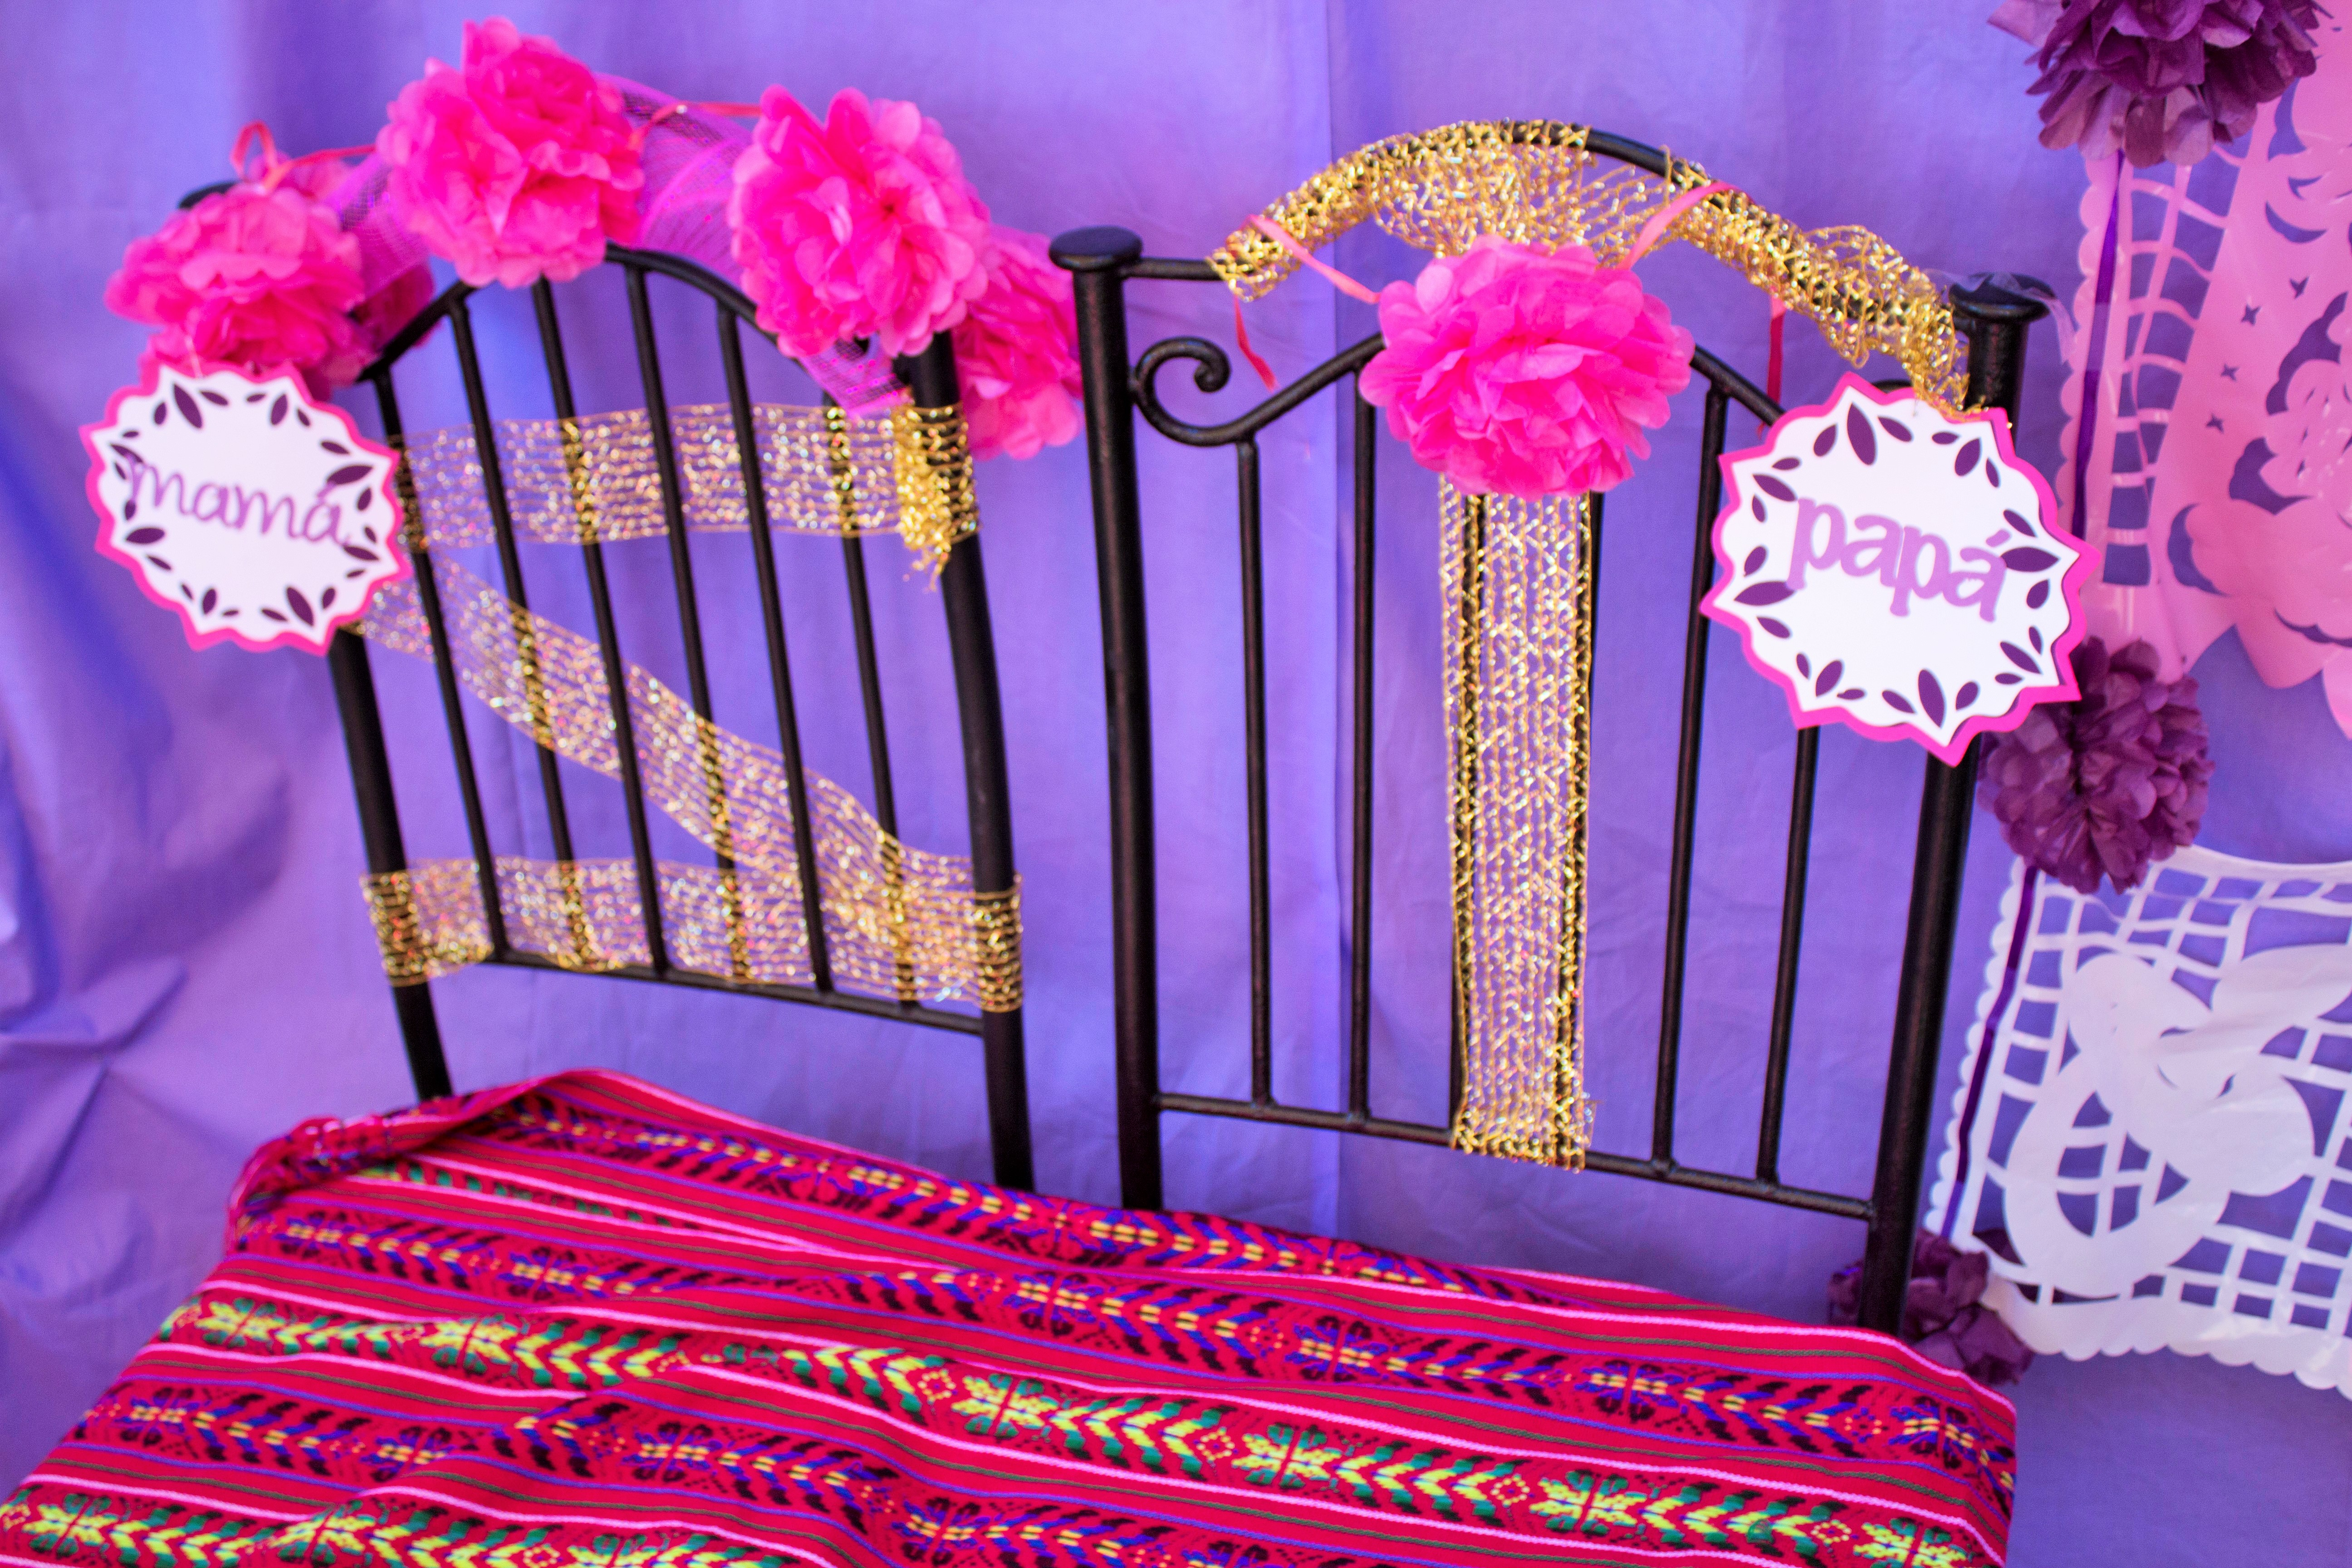 i loved all of the decor the colors and the small details that made the fun and vibrant girly mexican fiesta theme come to life